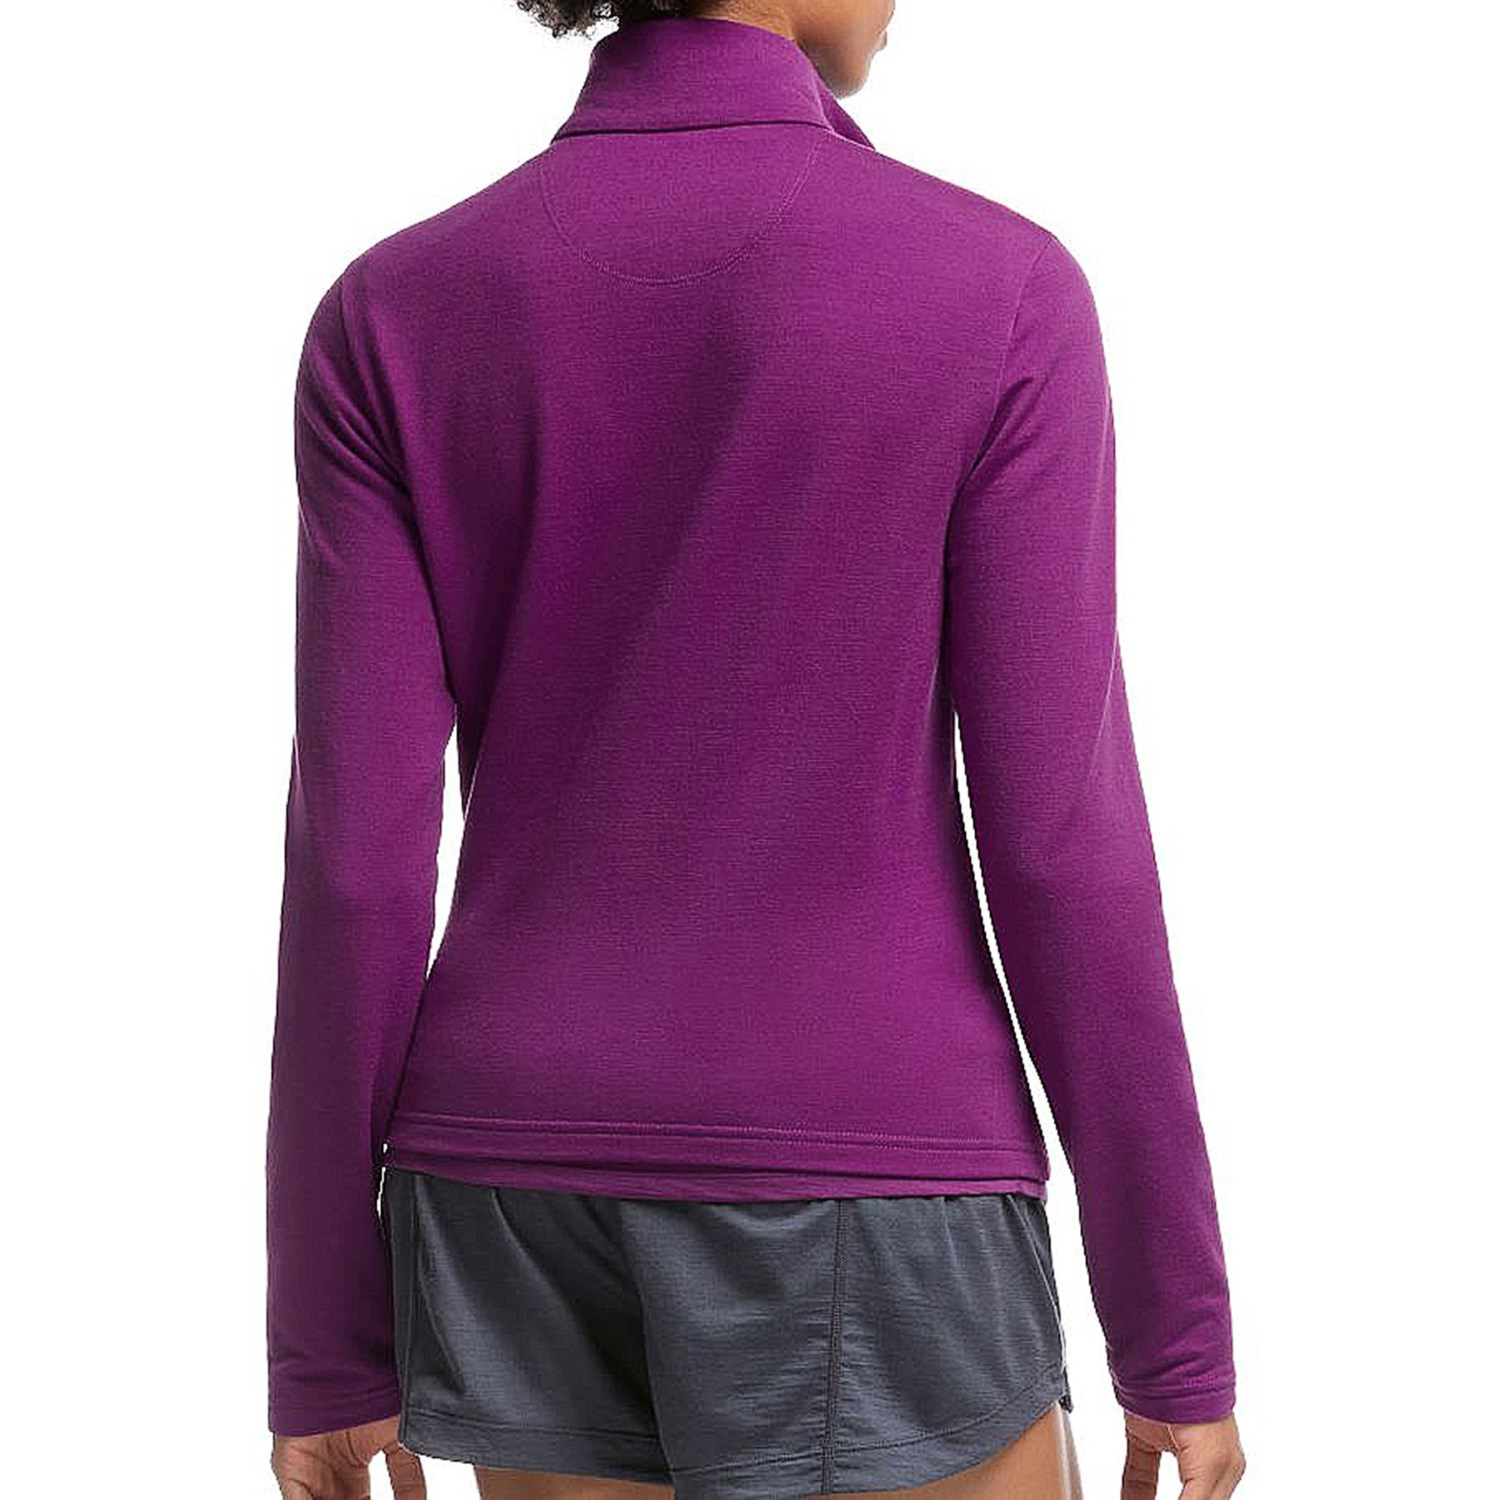 Icebreaker victory zip shirt for women save 60 for Merino wool shirt womens